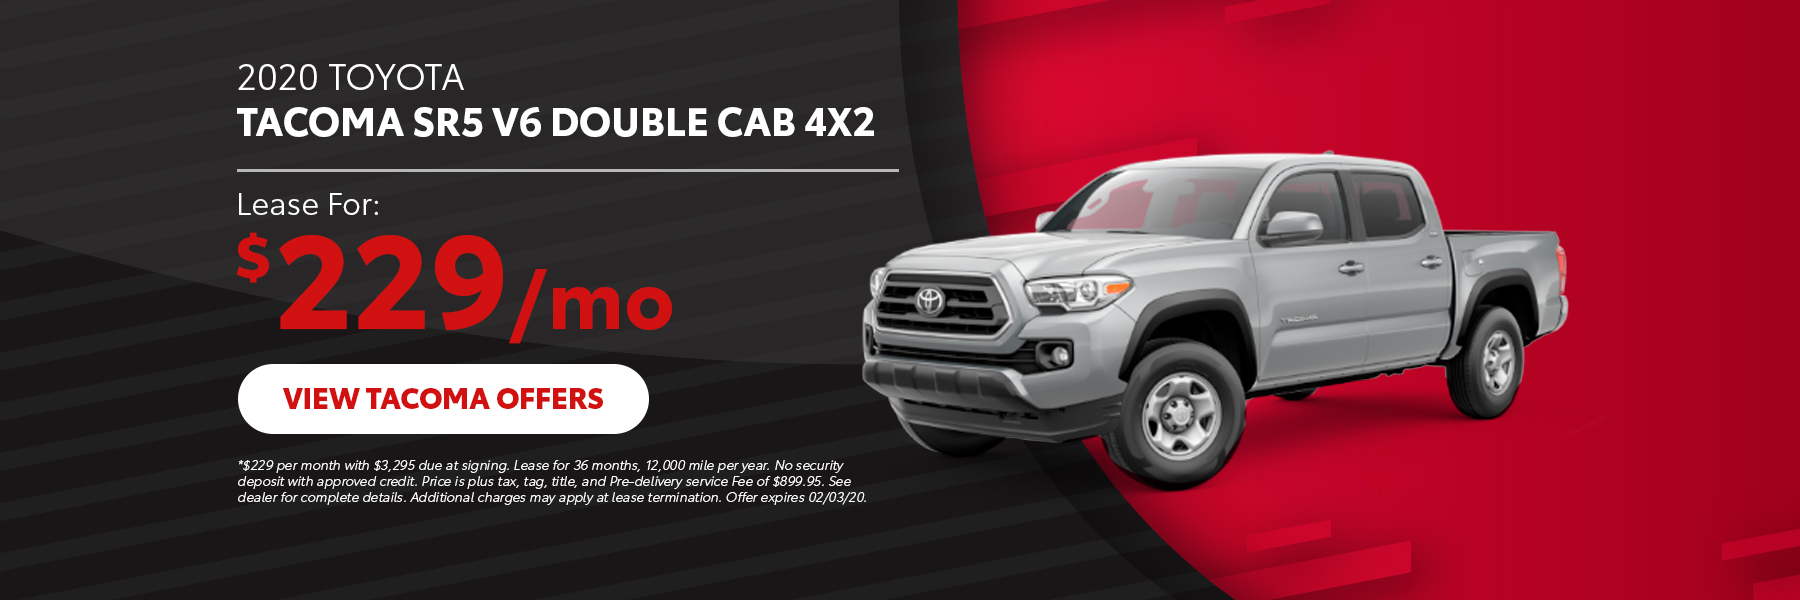 2020 Toyota Tacoma Offer